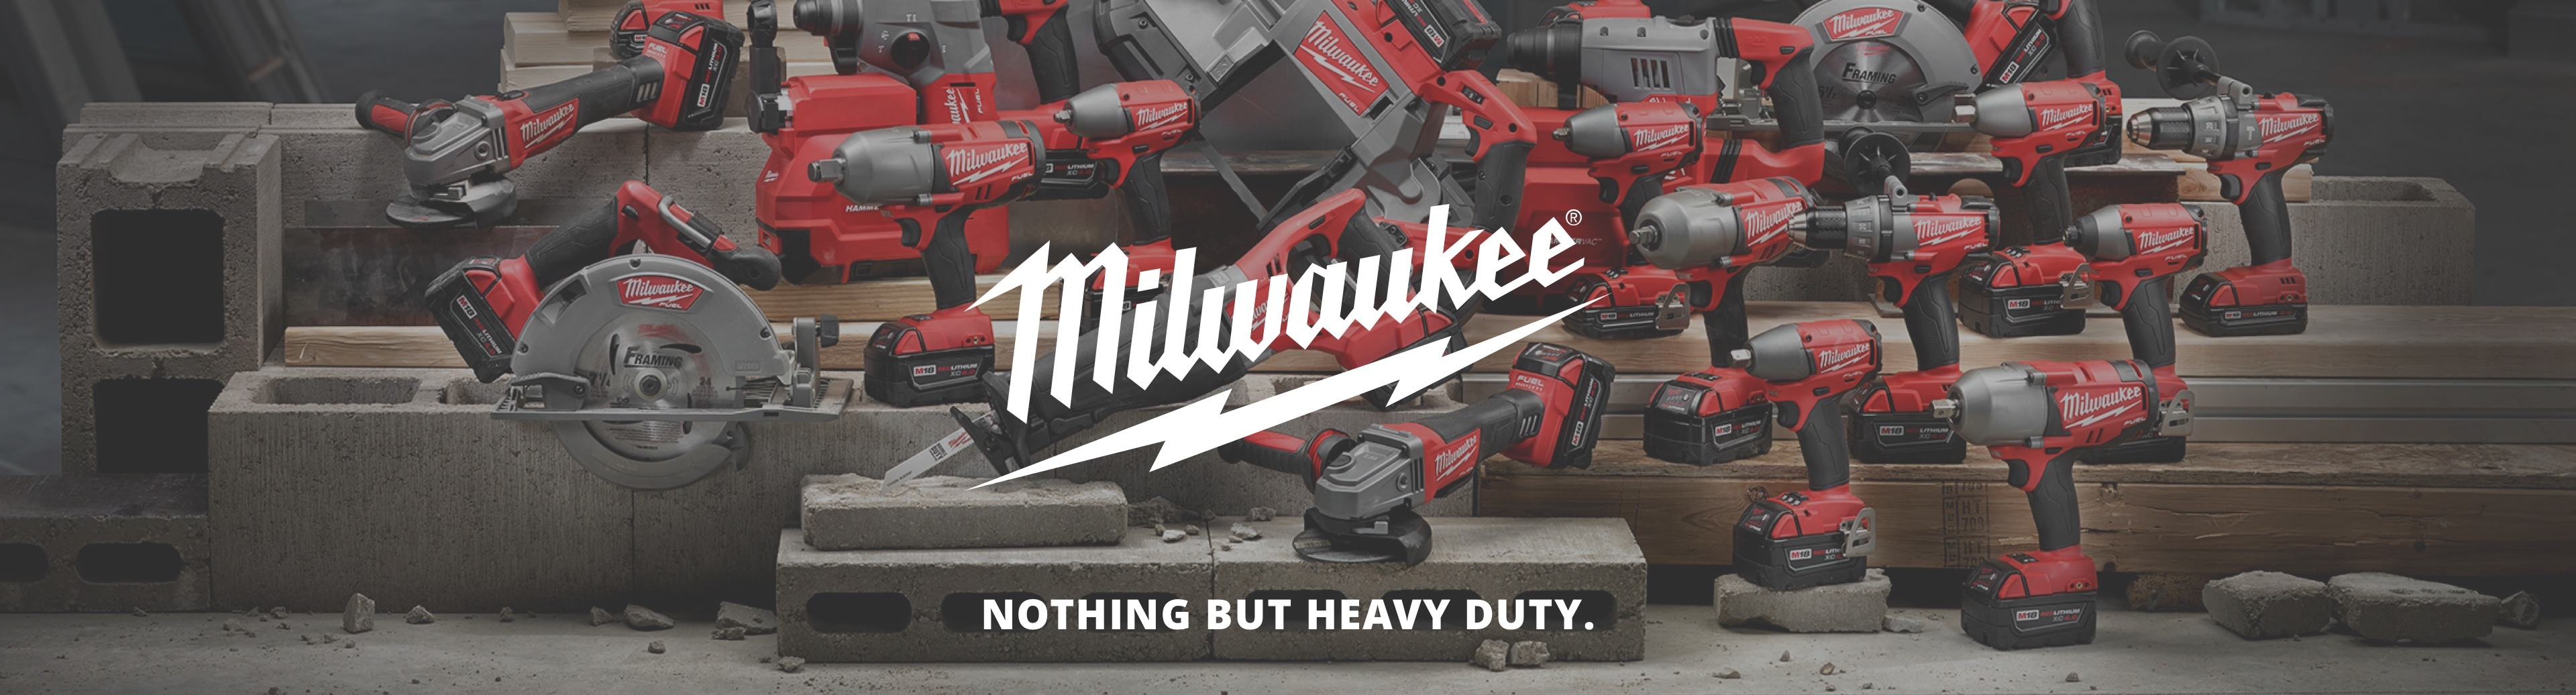 More about Milwaukee power tools at M&M